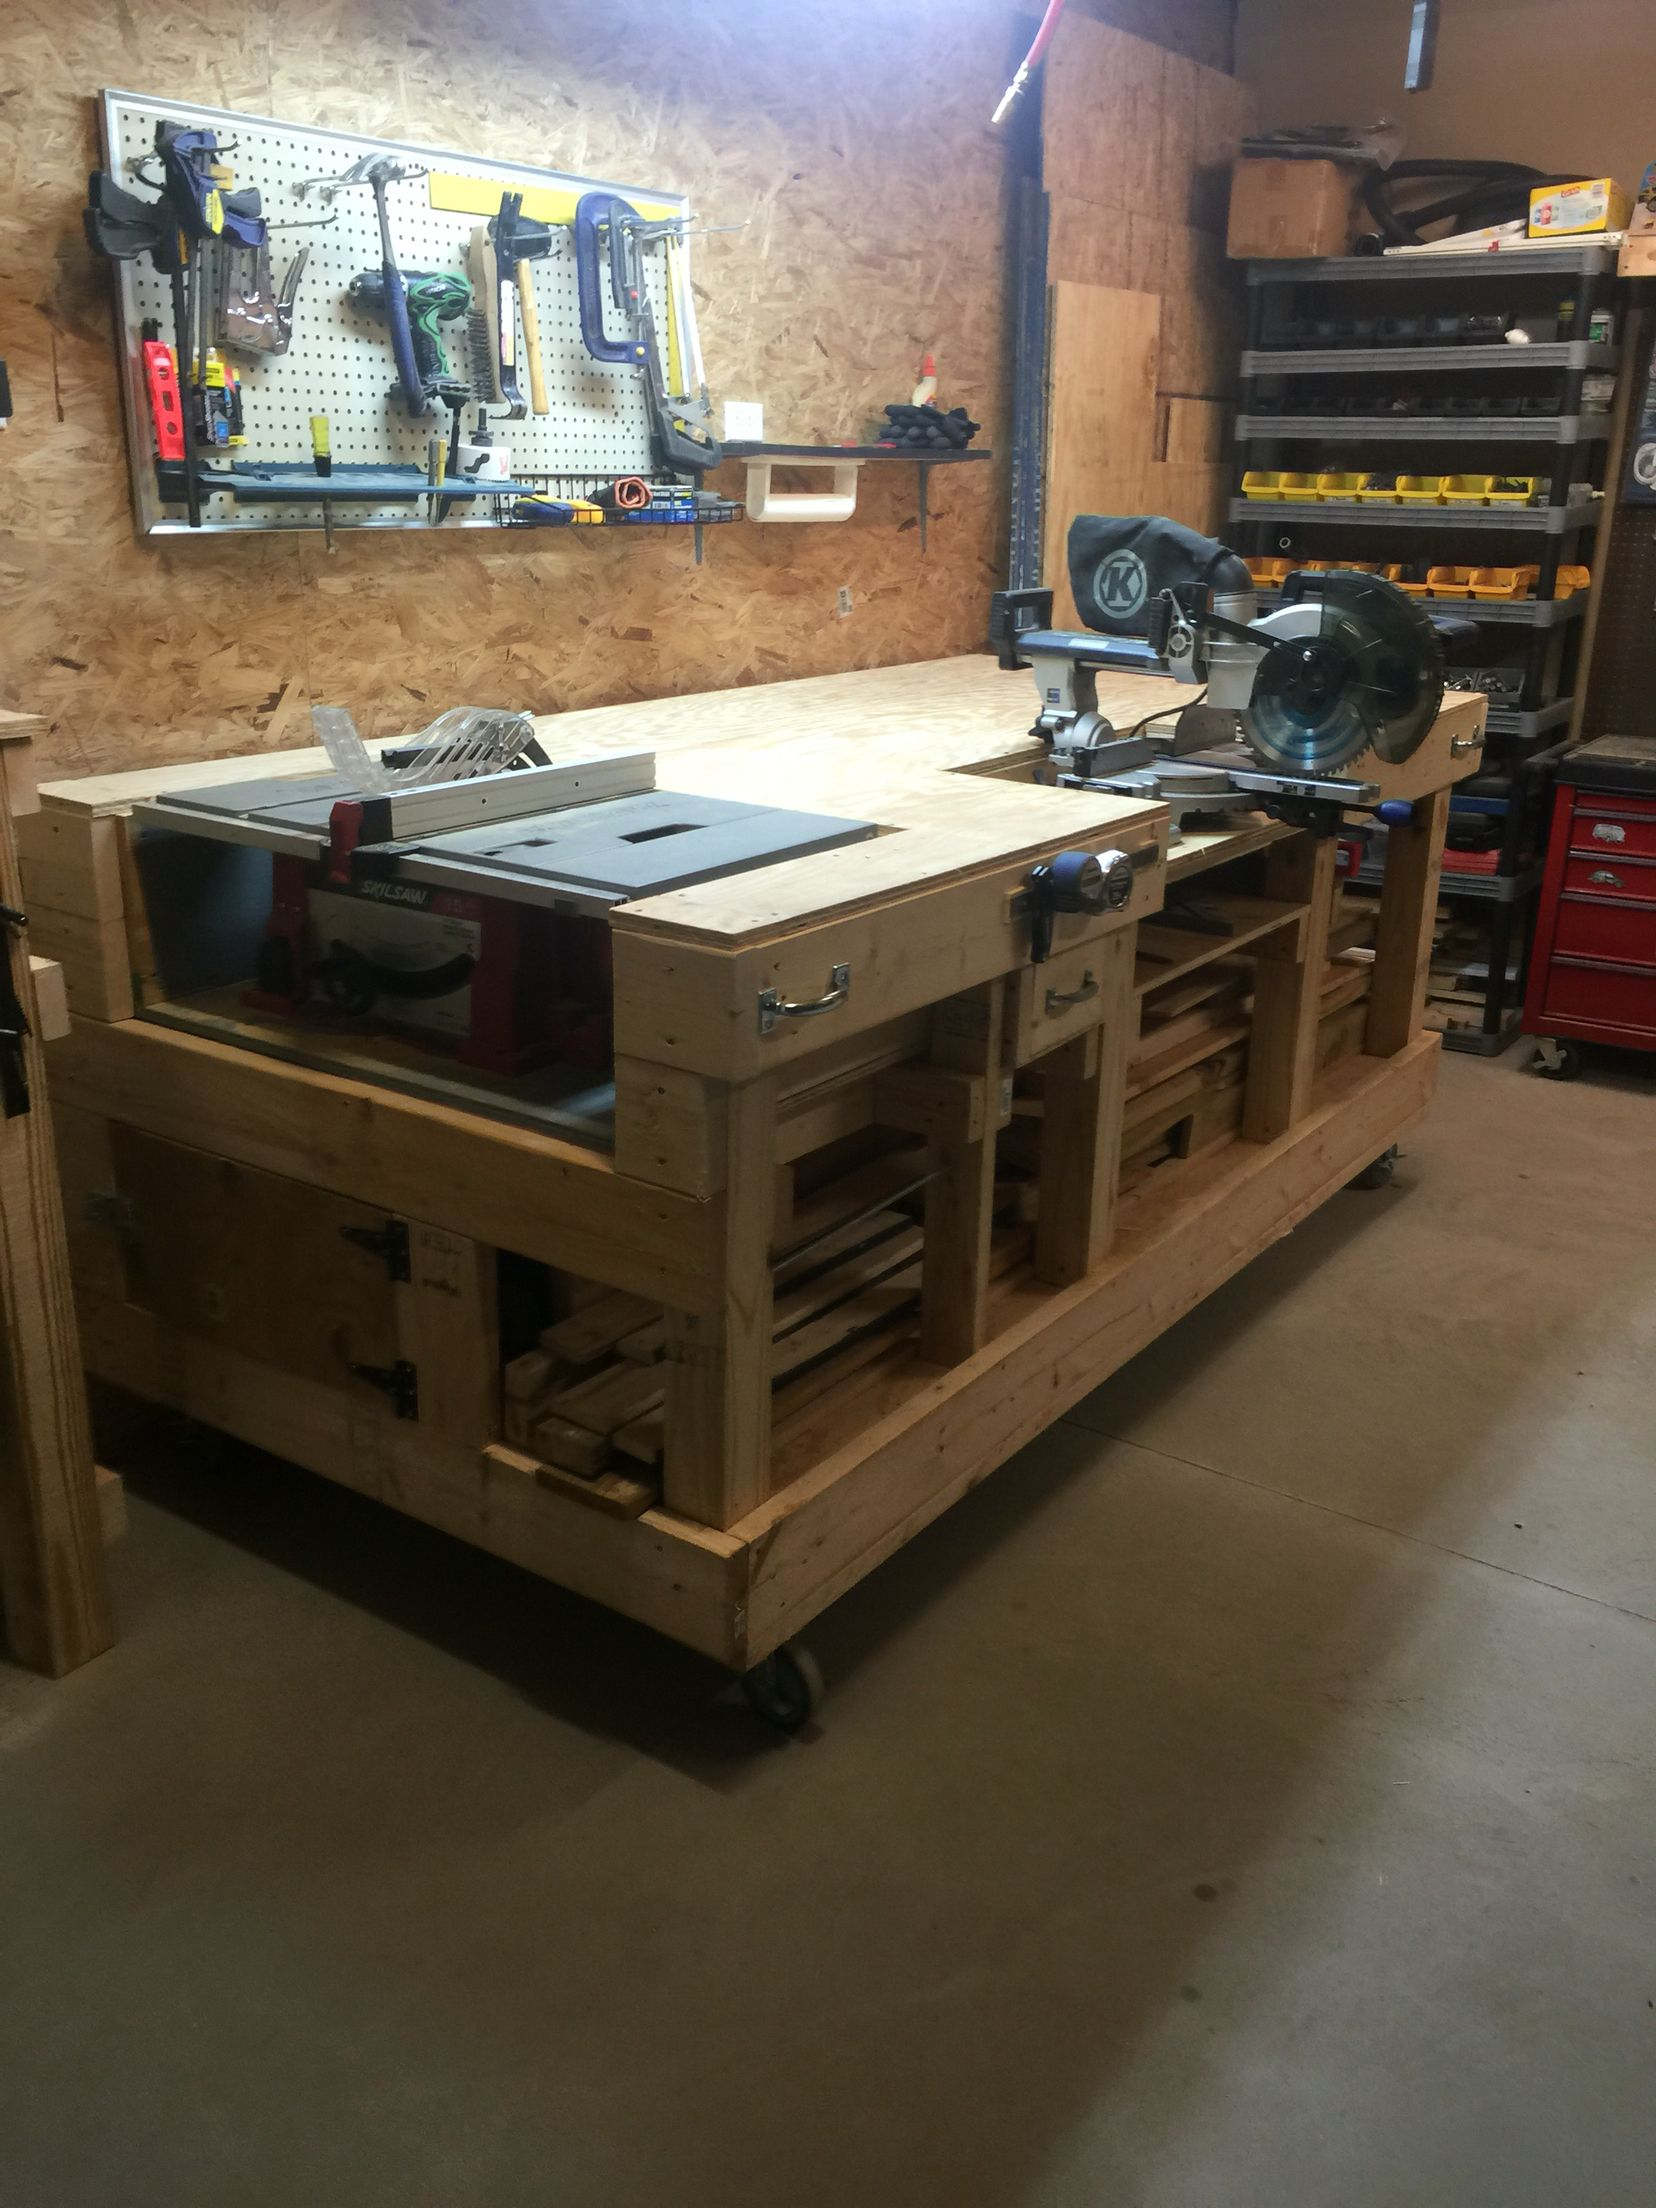 Garage6 Ft Workbench Plans Fold Away Workbench Plans Build A – Plans For Building A Workbench In A Garage